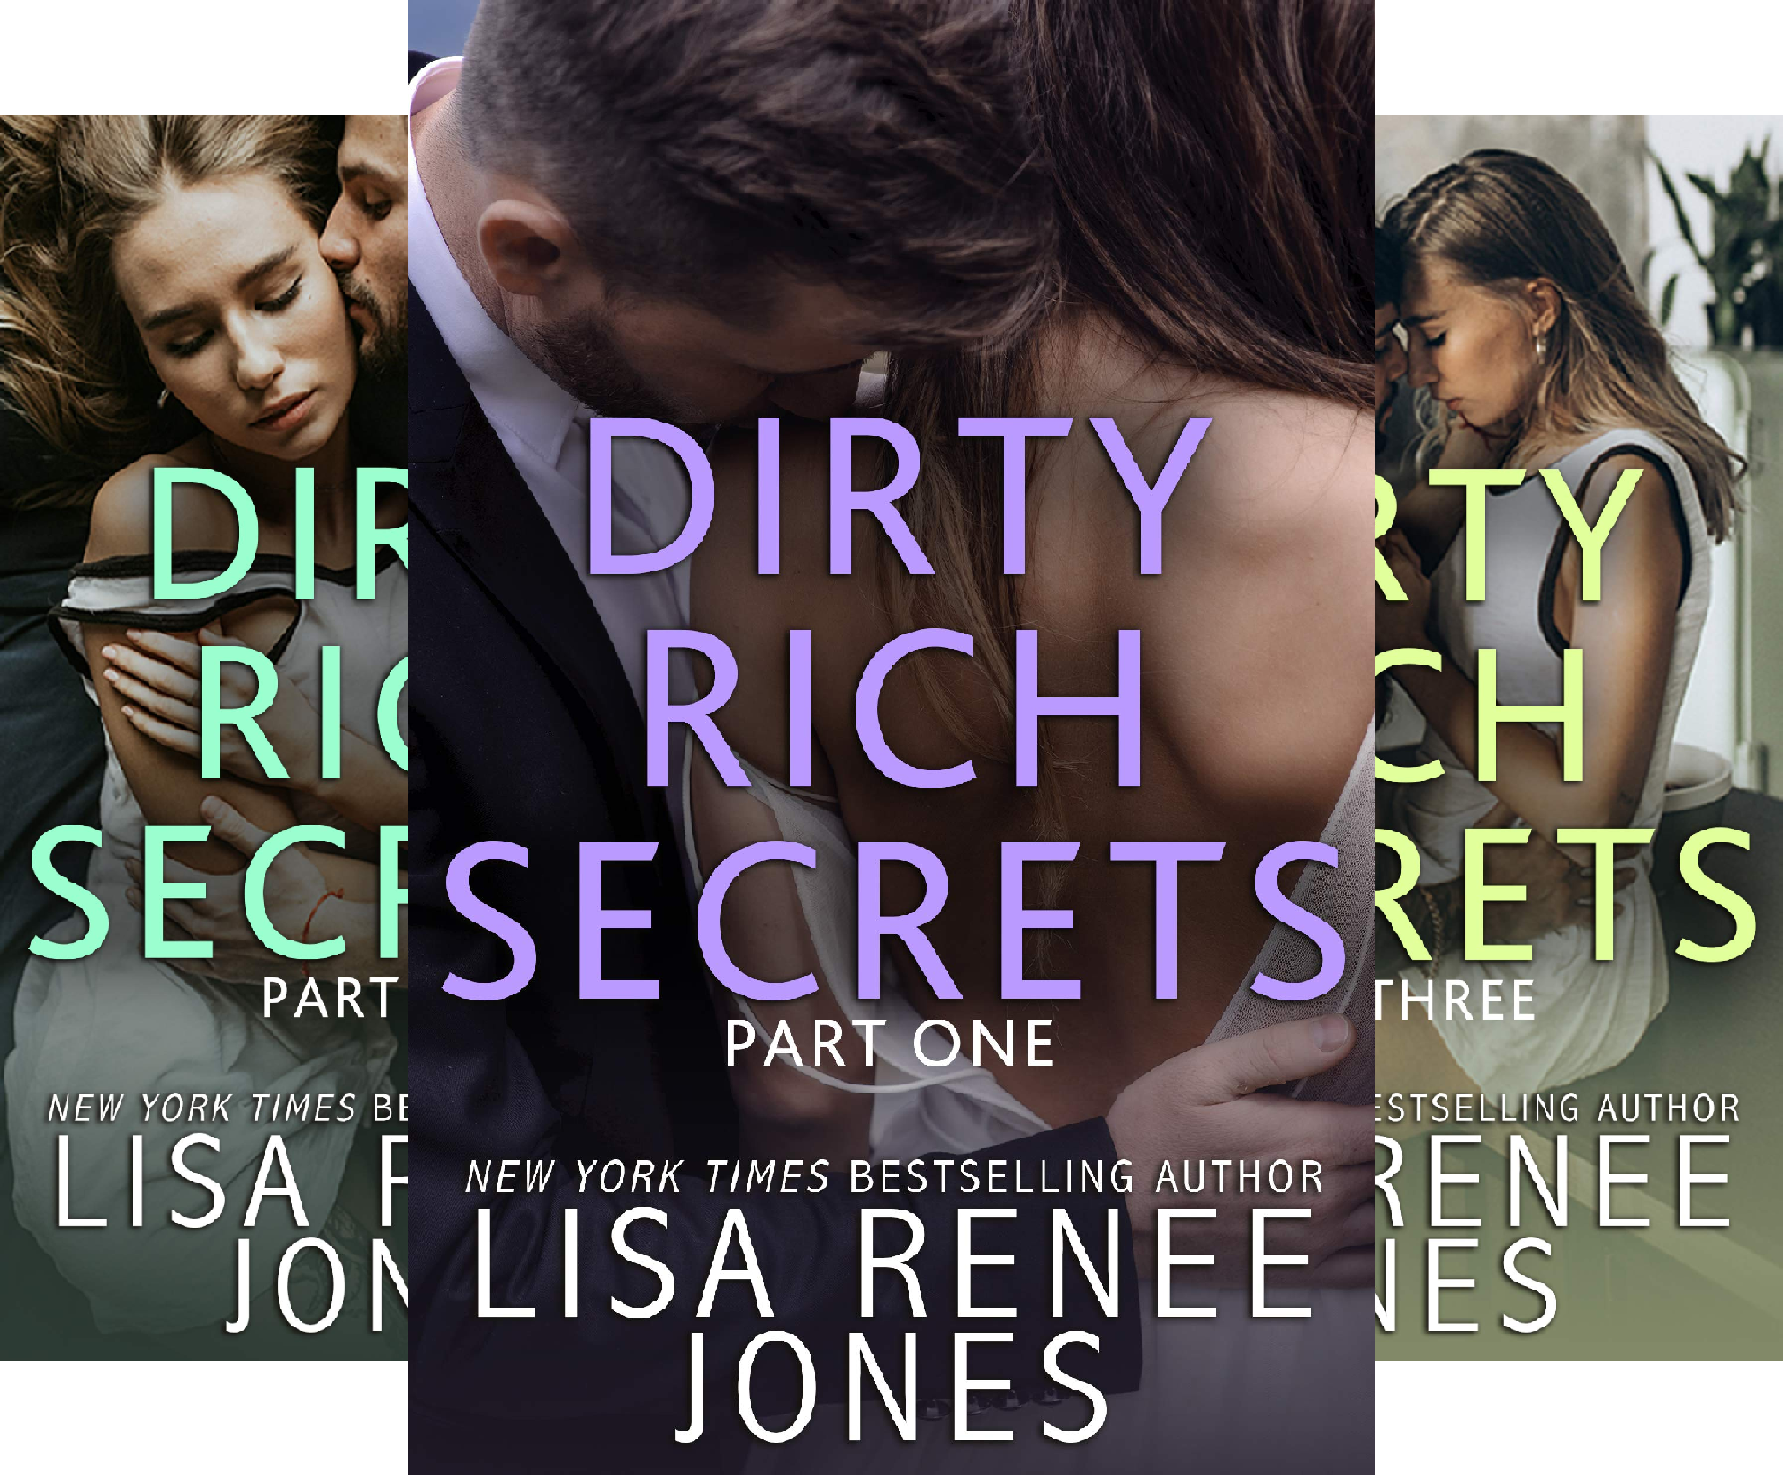 Dirty Rich Secrets (3 Book Series) (Lisa Renee Jones-serie)